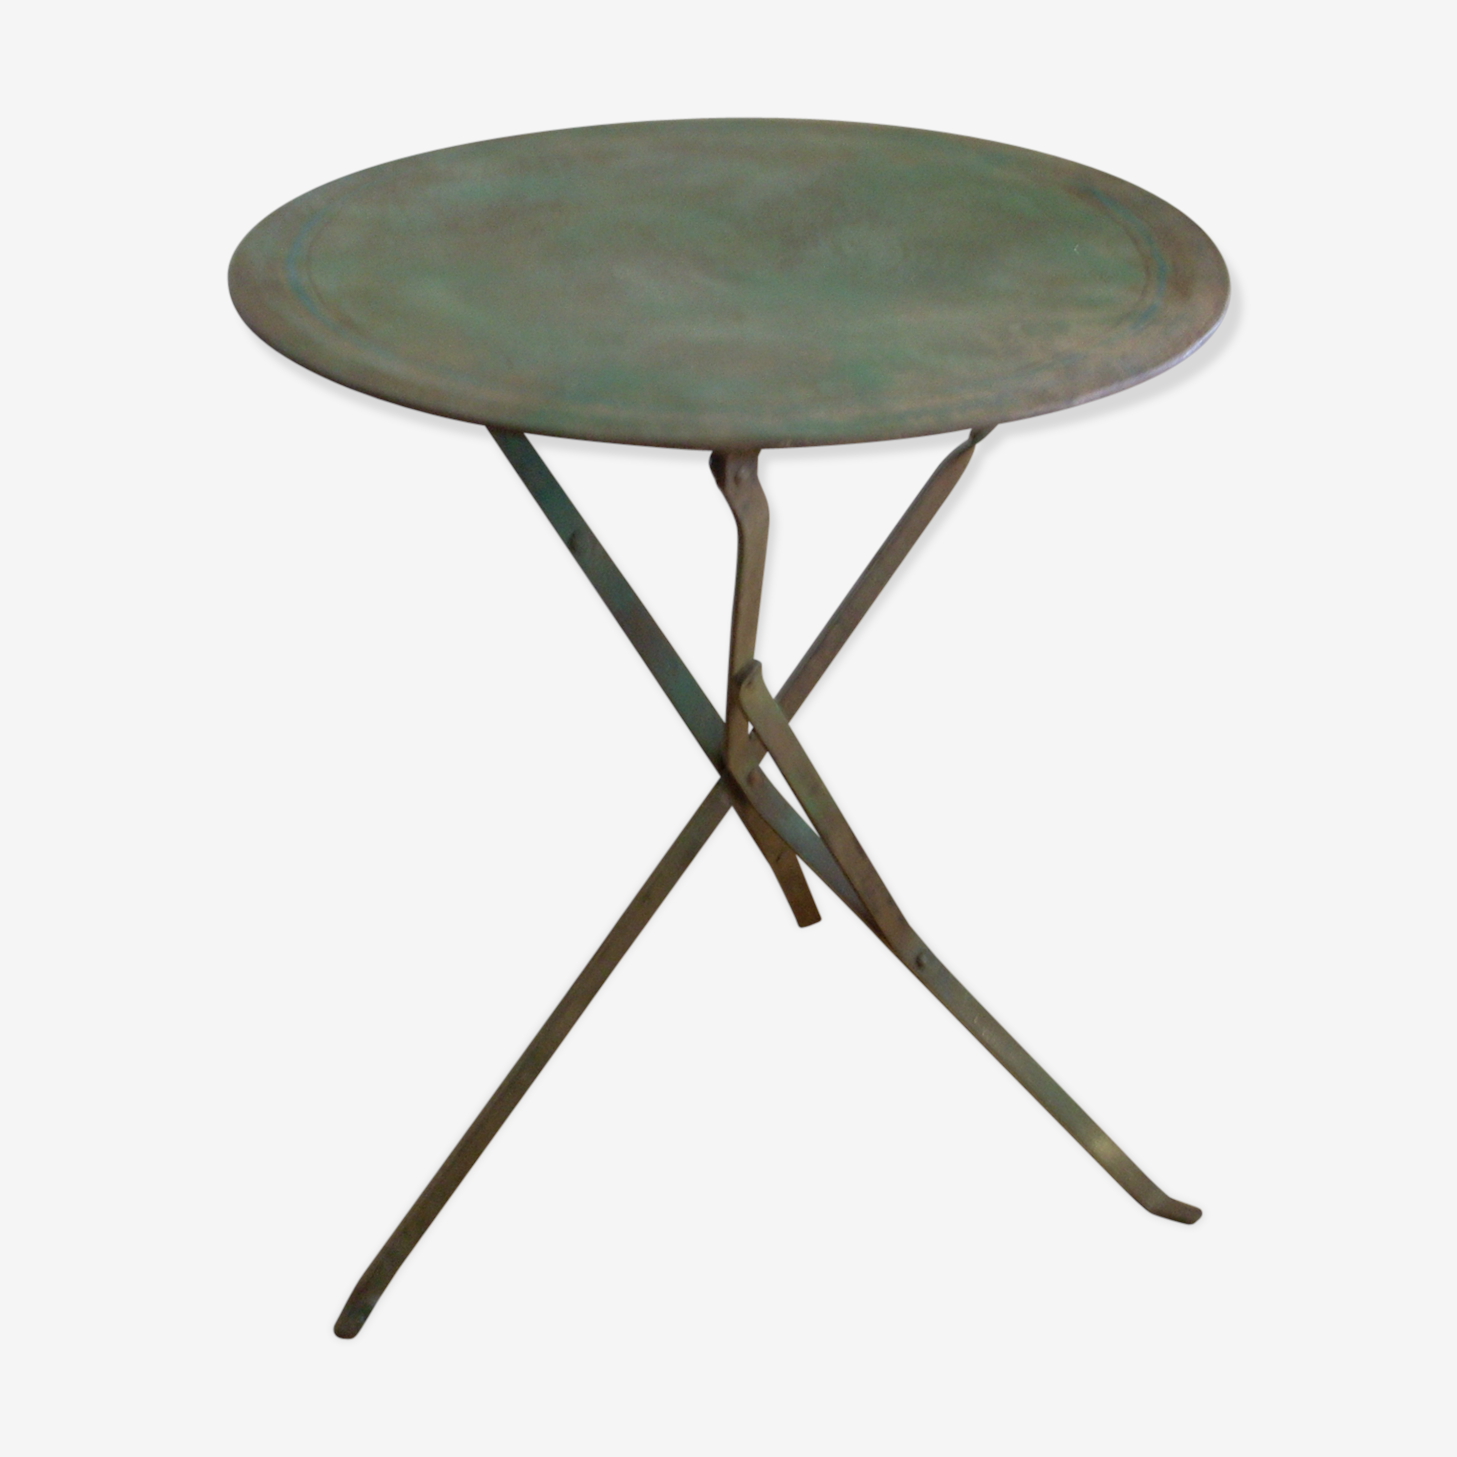 Round table in painted metal